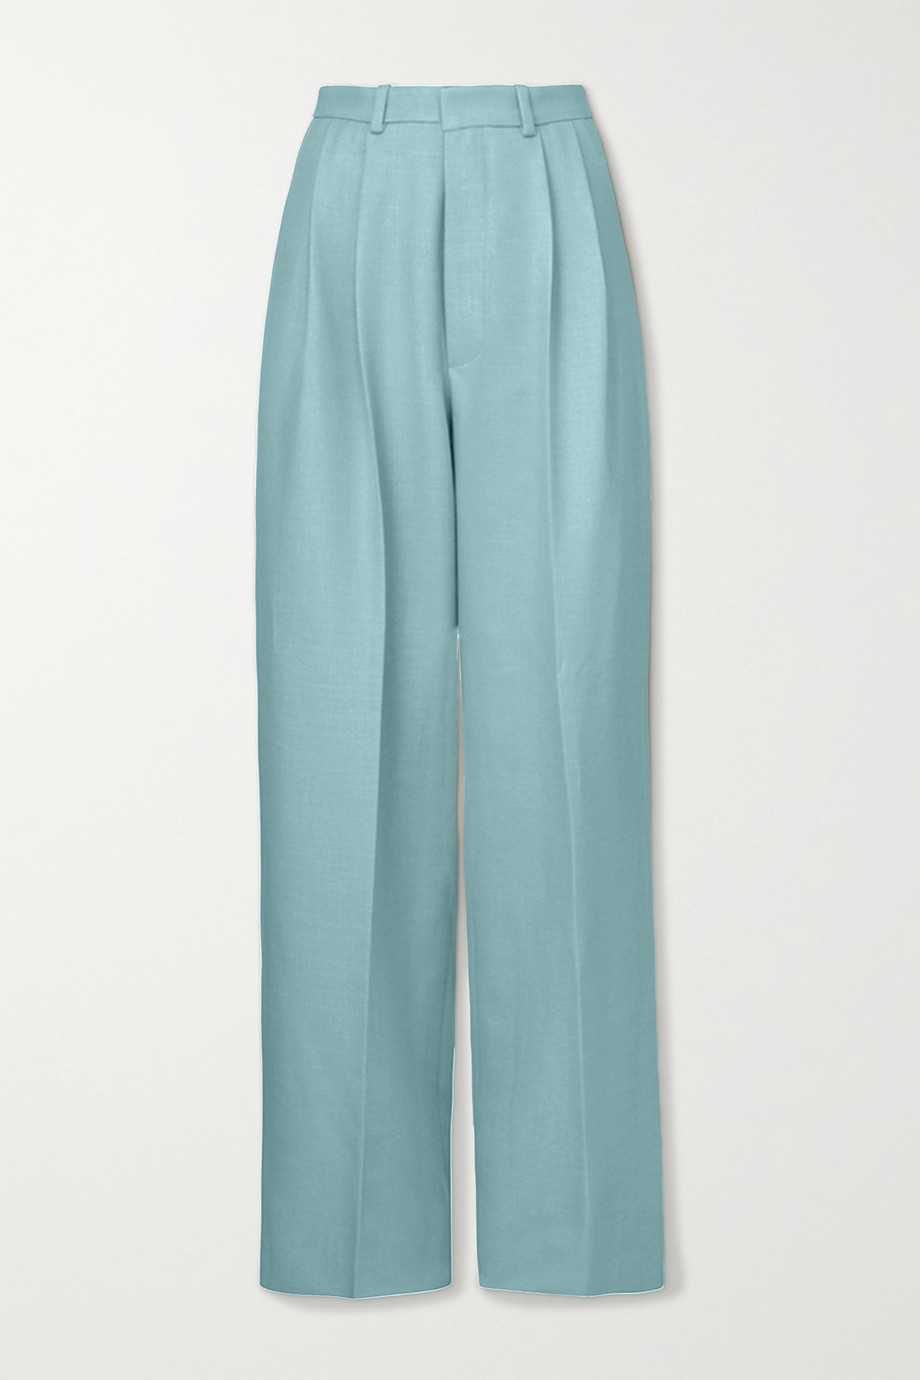 DODO BAR OR Coco pleated wool-blend wide-leg pants